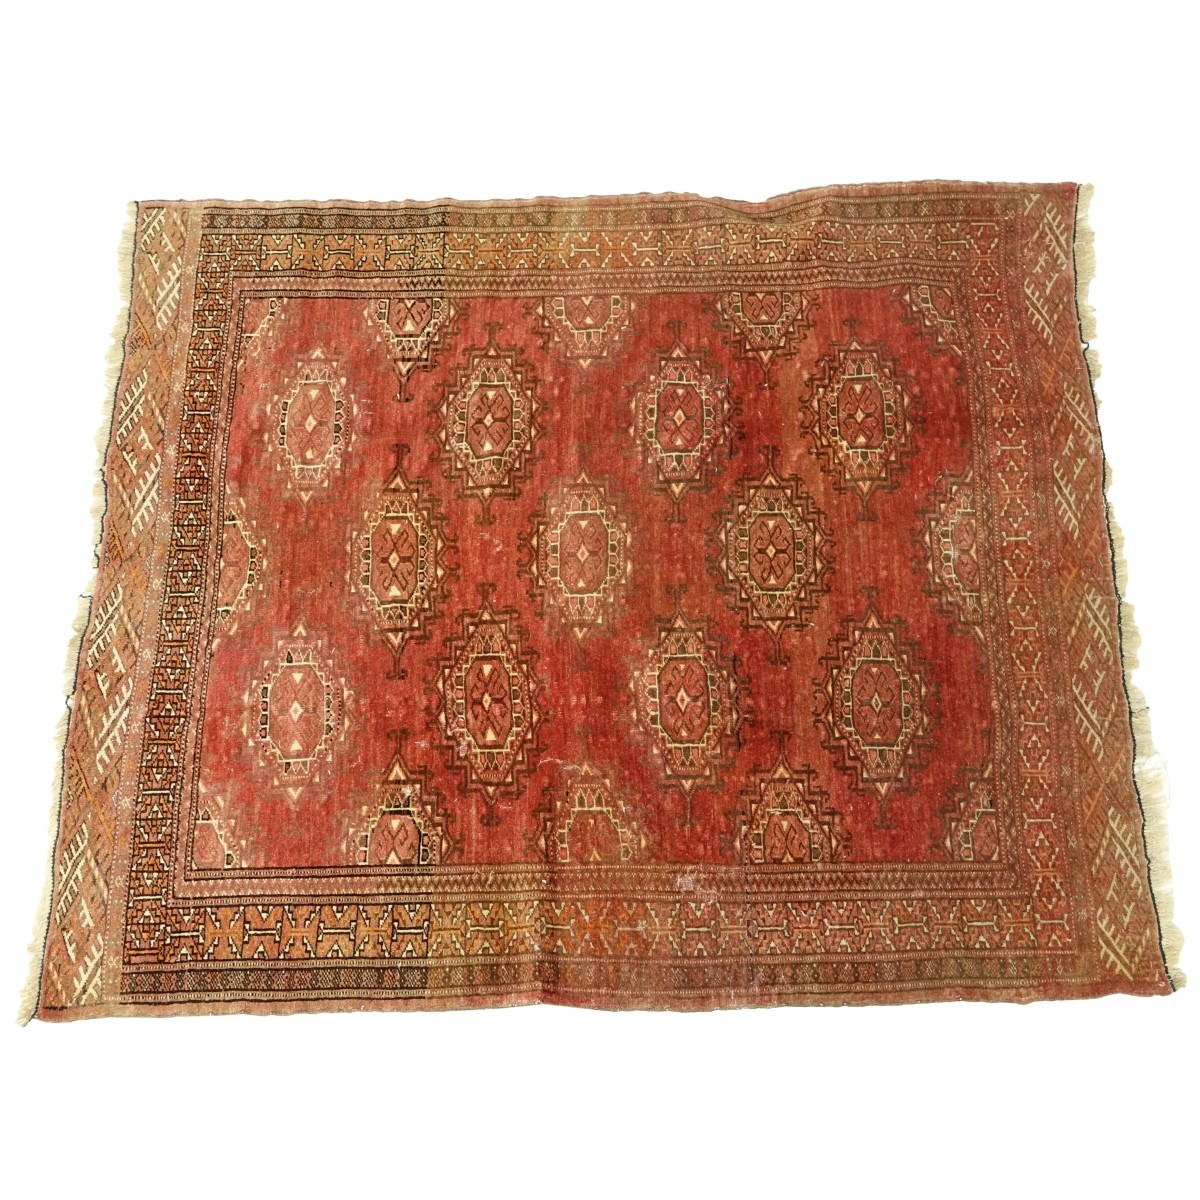 Semi-Antique Geometric Balouch Rug